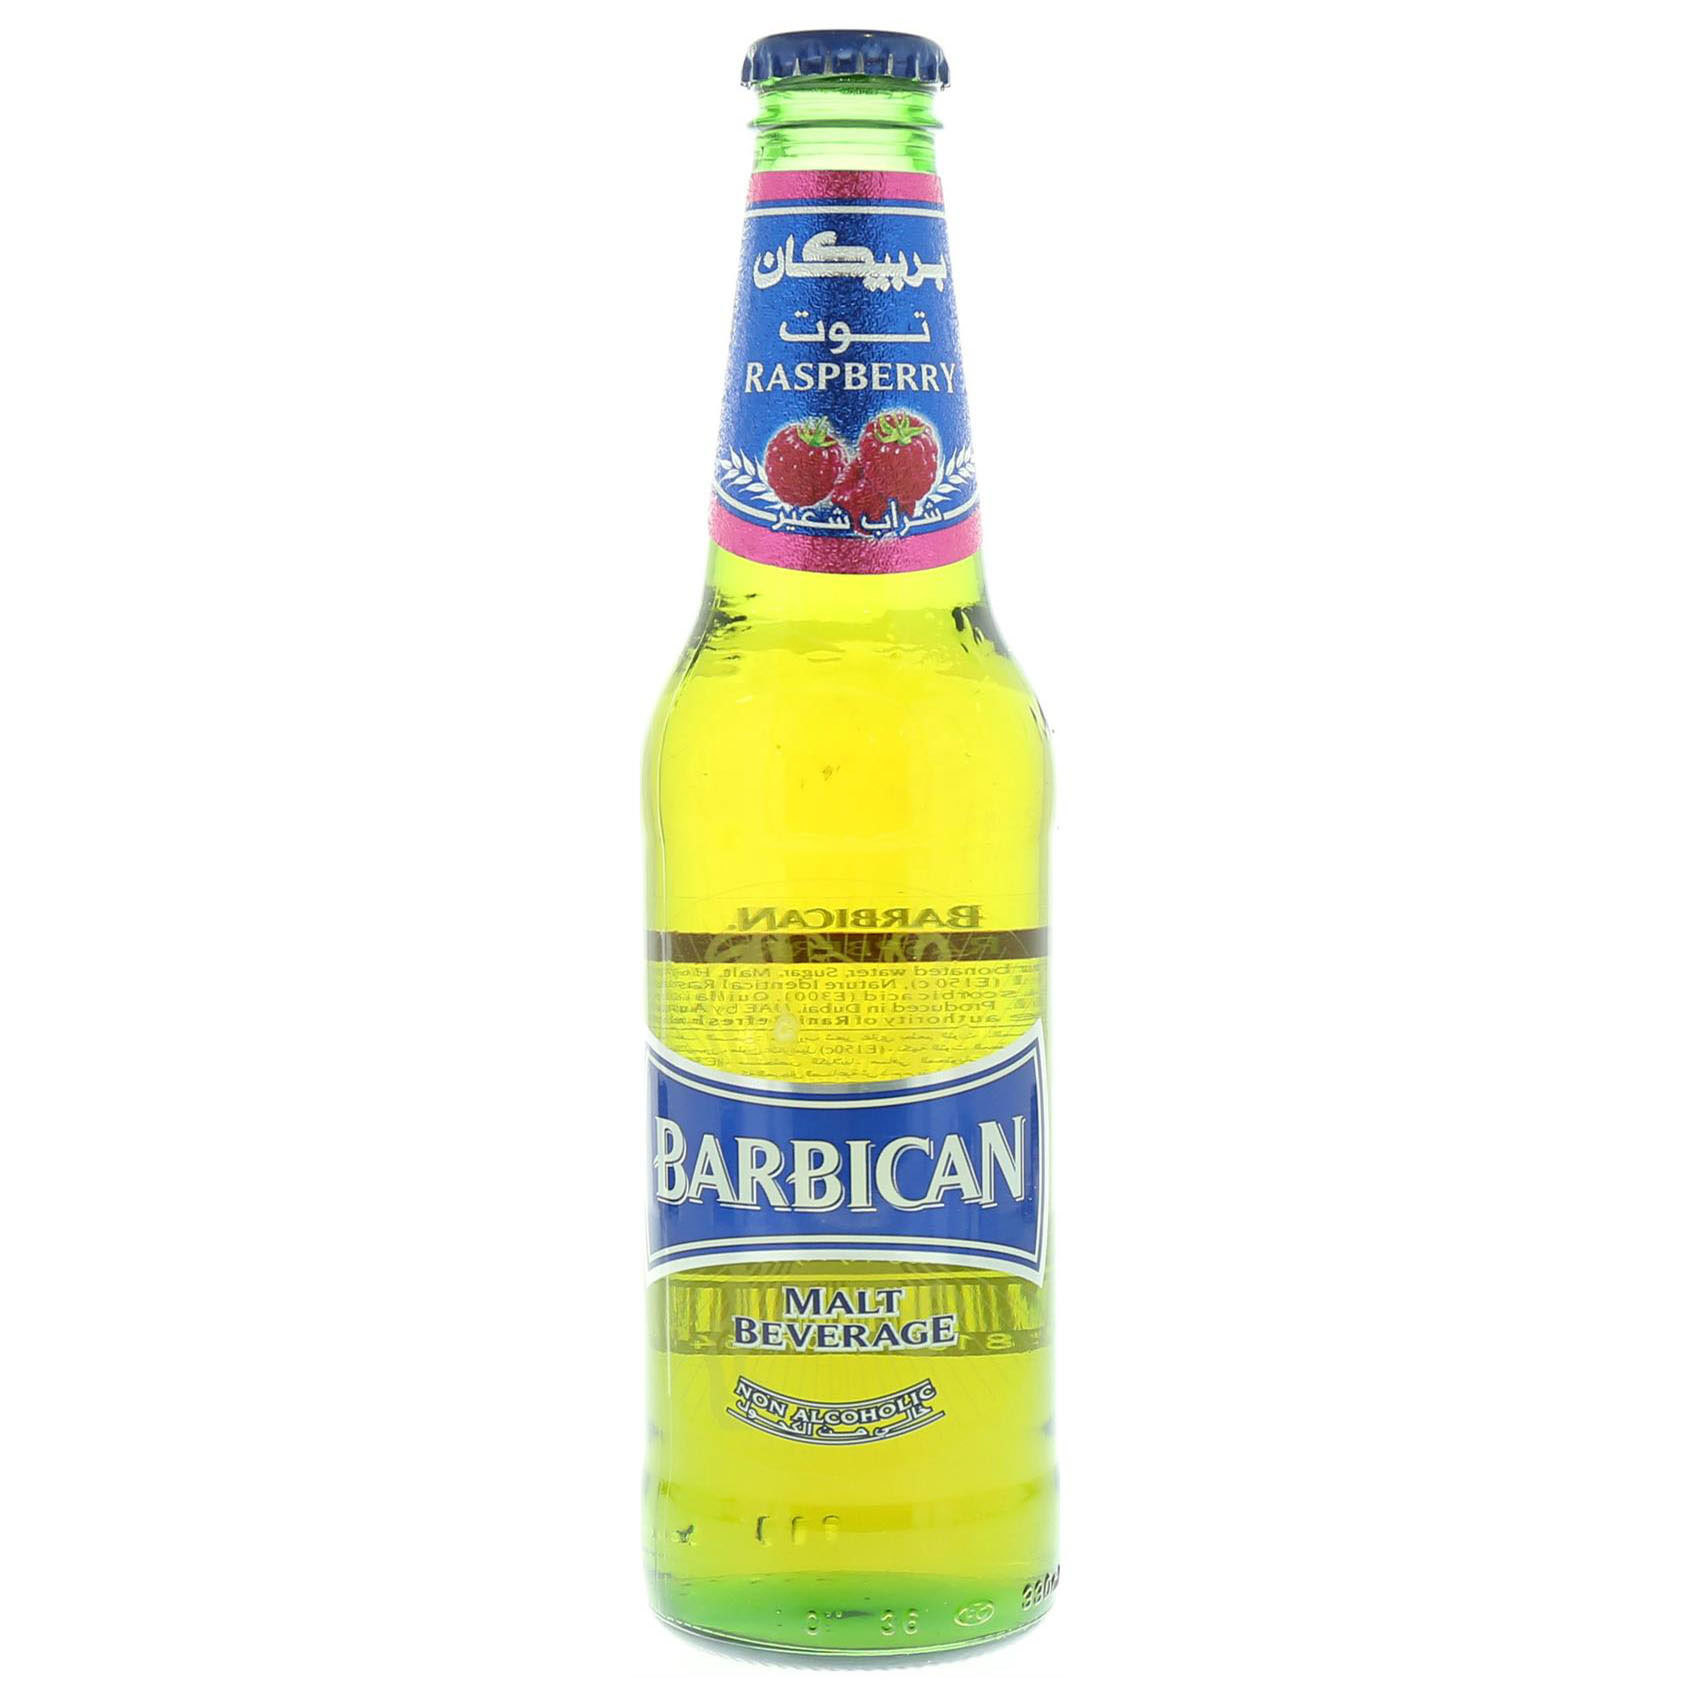 BARBICAN N/ALCO BEER R/BERRY330ML